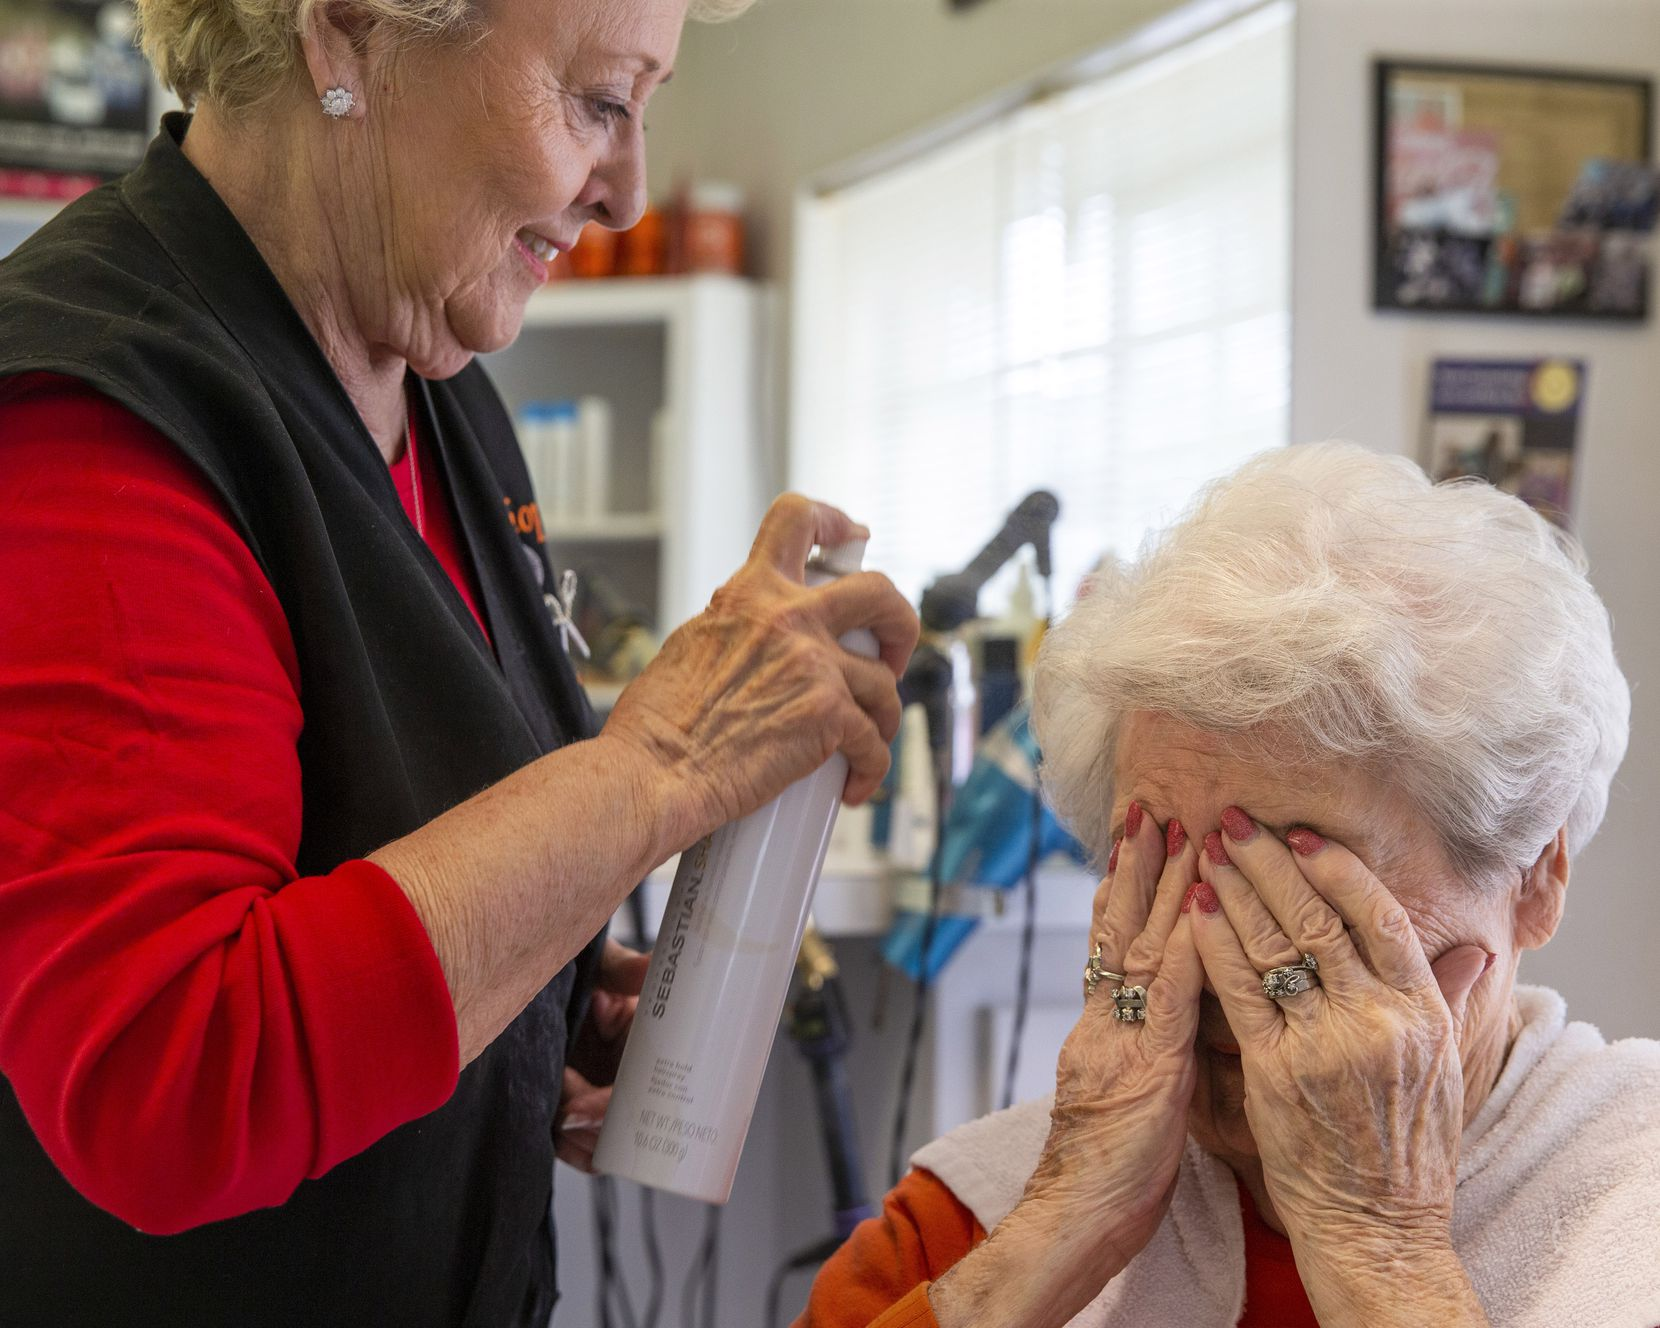 """Shirley O'Neal (left) set Peralea Pell's hair with hair spray at Shirley's Hair Shop in Celina on Nov. 21, 2019. O'Neal calls Pell a """"lifer,"""" because she's been a client of hers since 1966, when she first opened her shop. """"Let me spray you one more time since it's muggy out there!"""" O'Neal told Pell."""